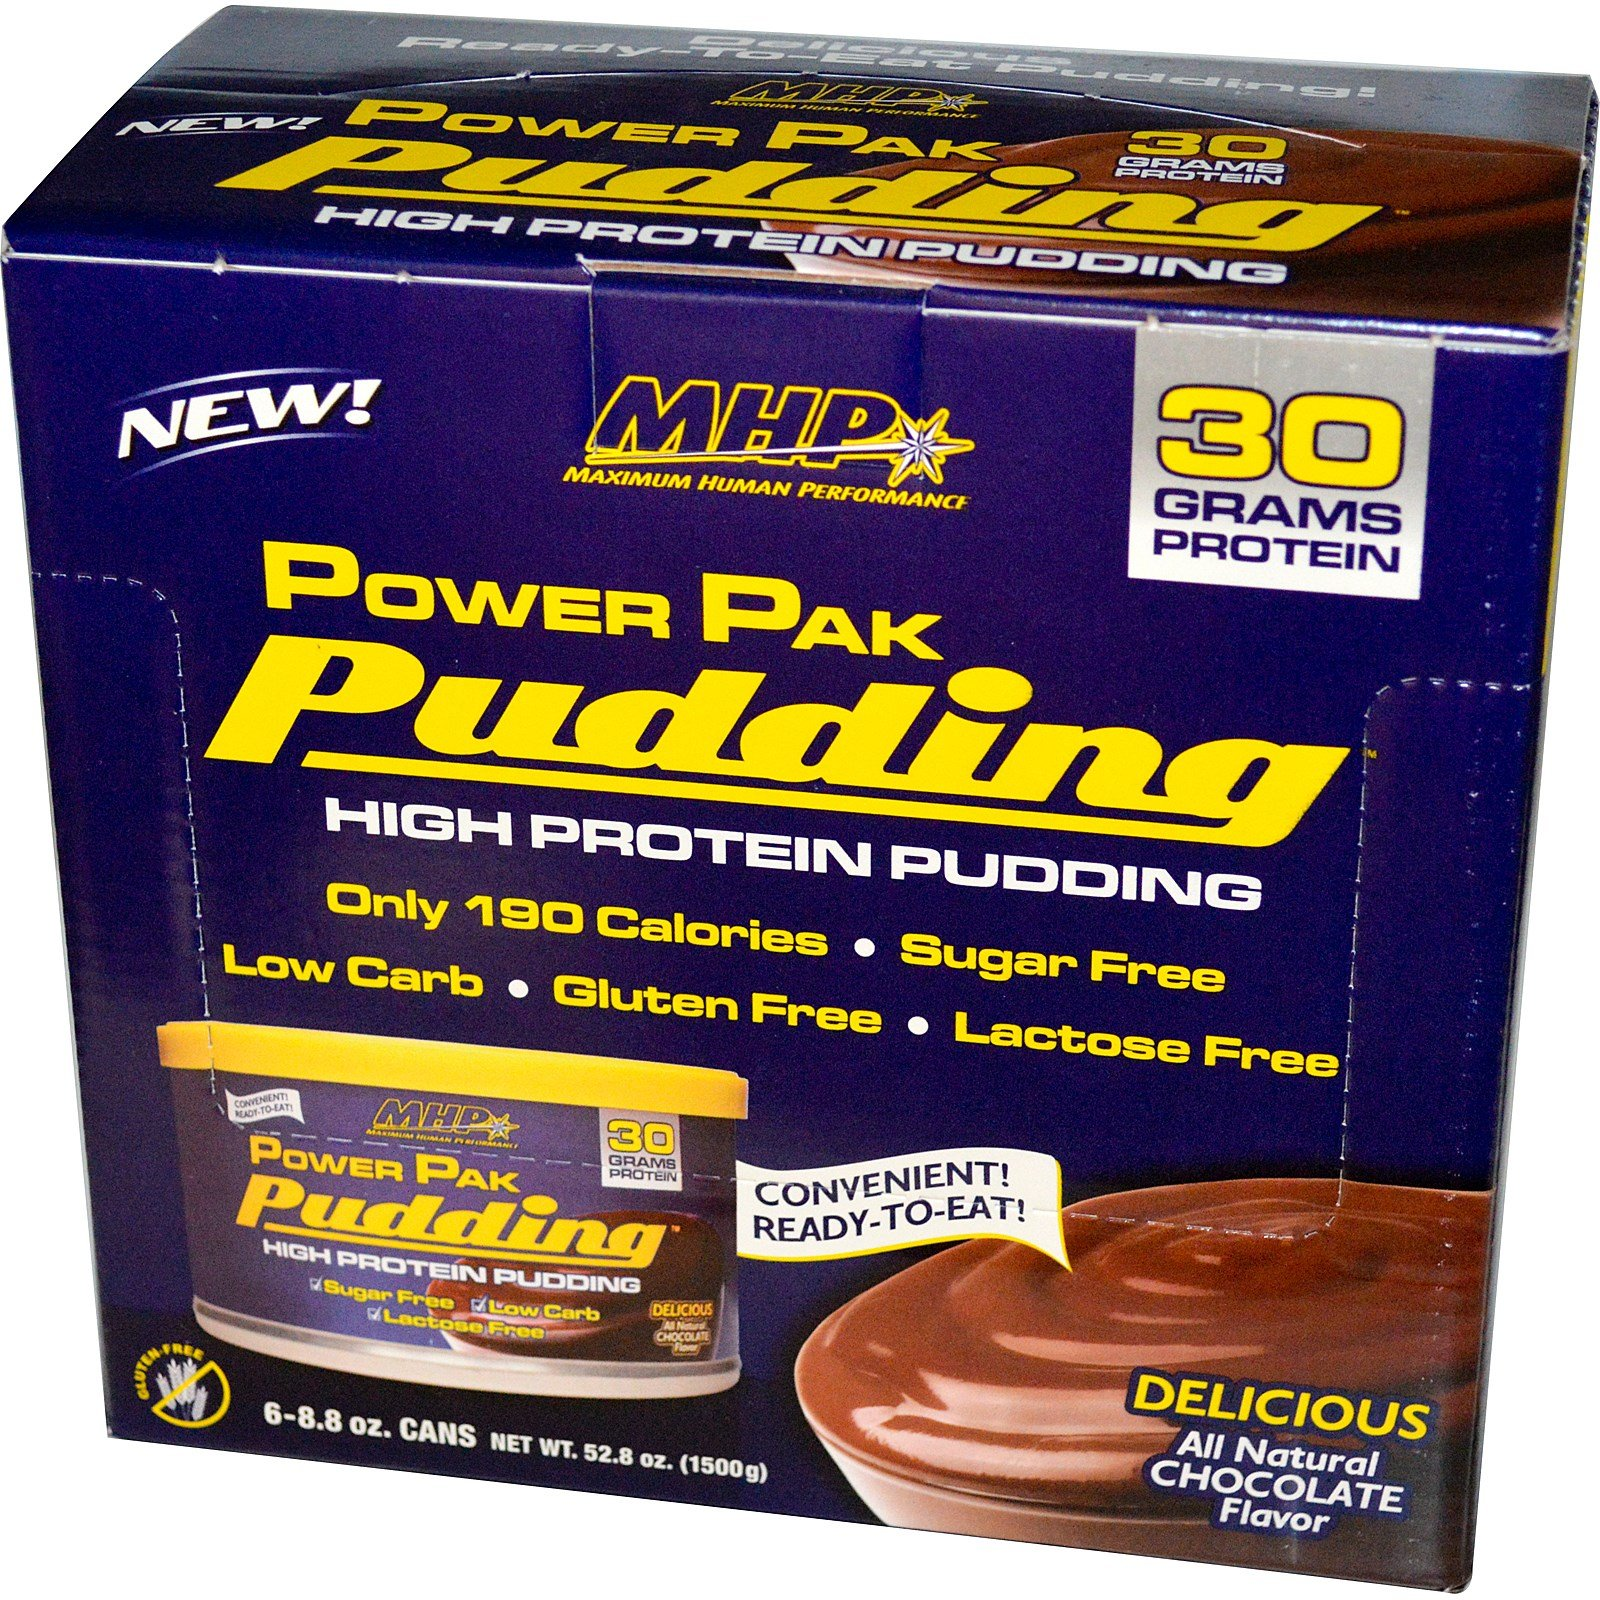 Maximum Human Performance, LLC, Power Pak Pudding, Chocolate, 6 Cans, 8.8 oz (250 g) Each - 2pc